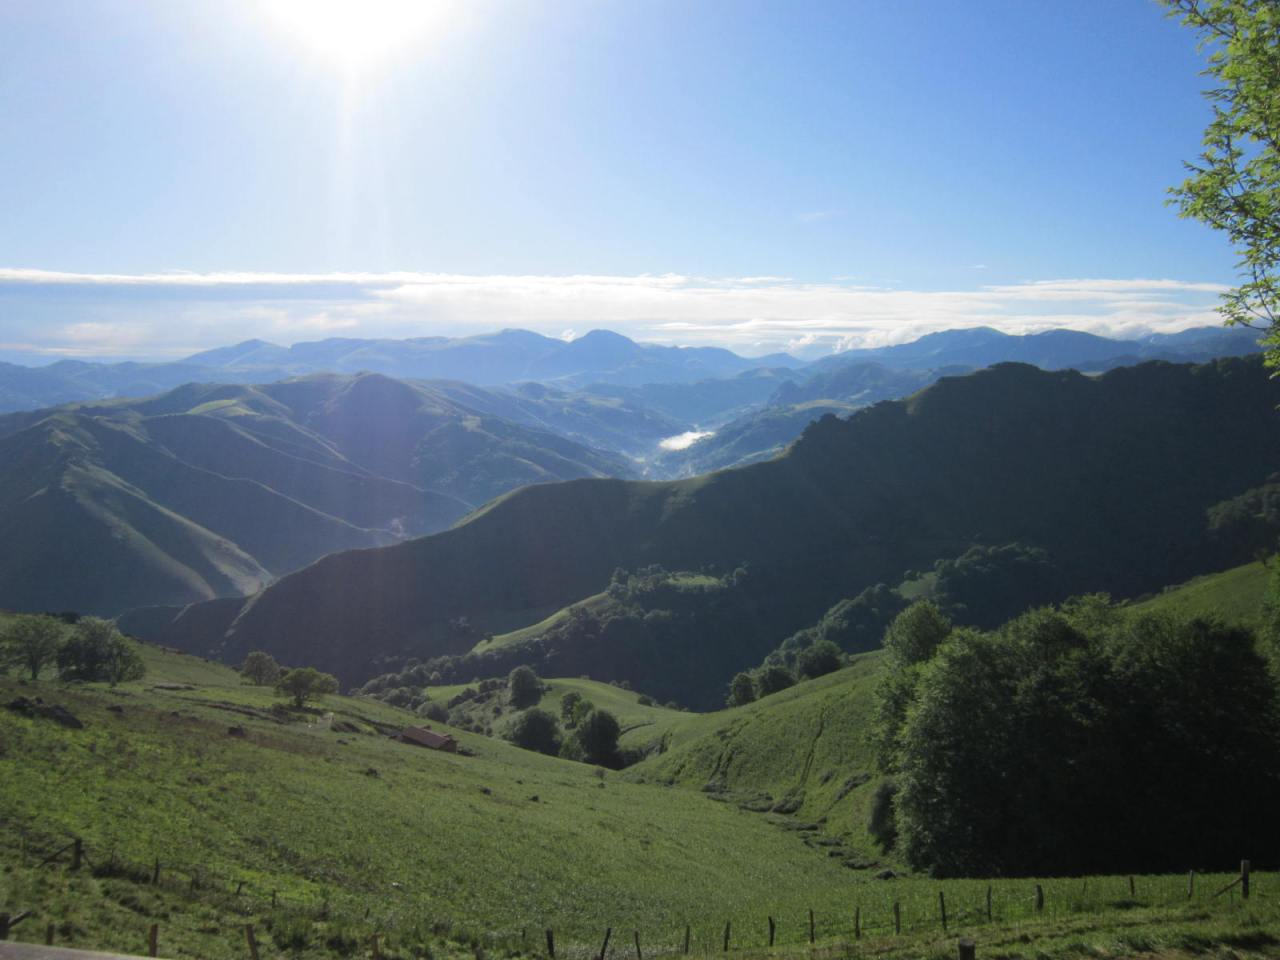 Left view on the walk up into the Pyrenees from St. Jean Pied de Port to Roncesvalles on the first day of the Camino Frances/FrenchWay